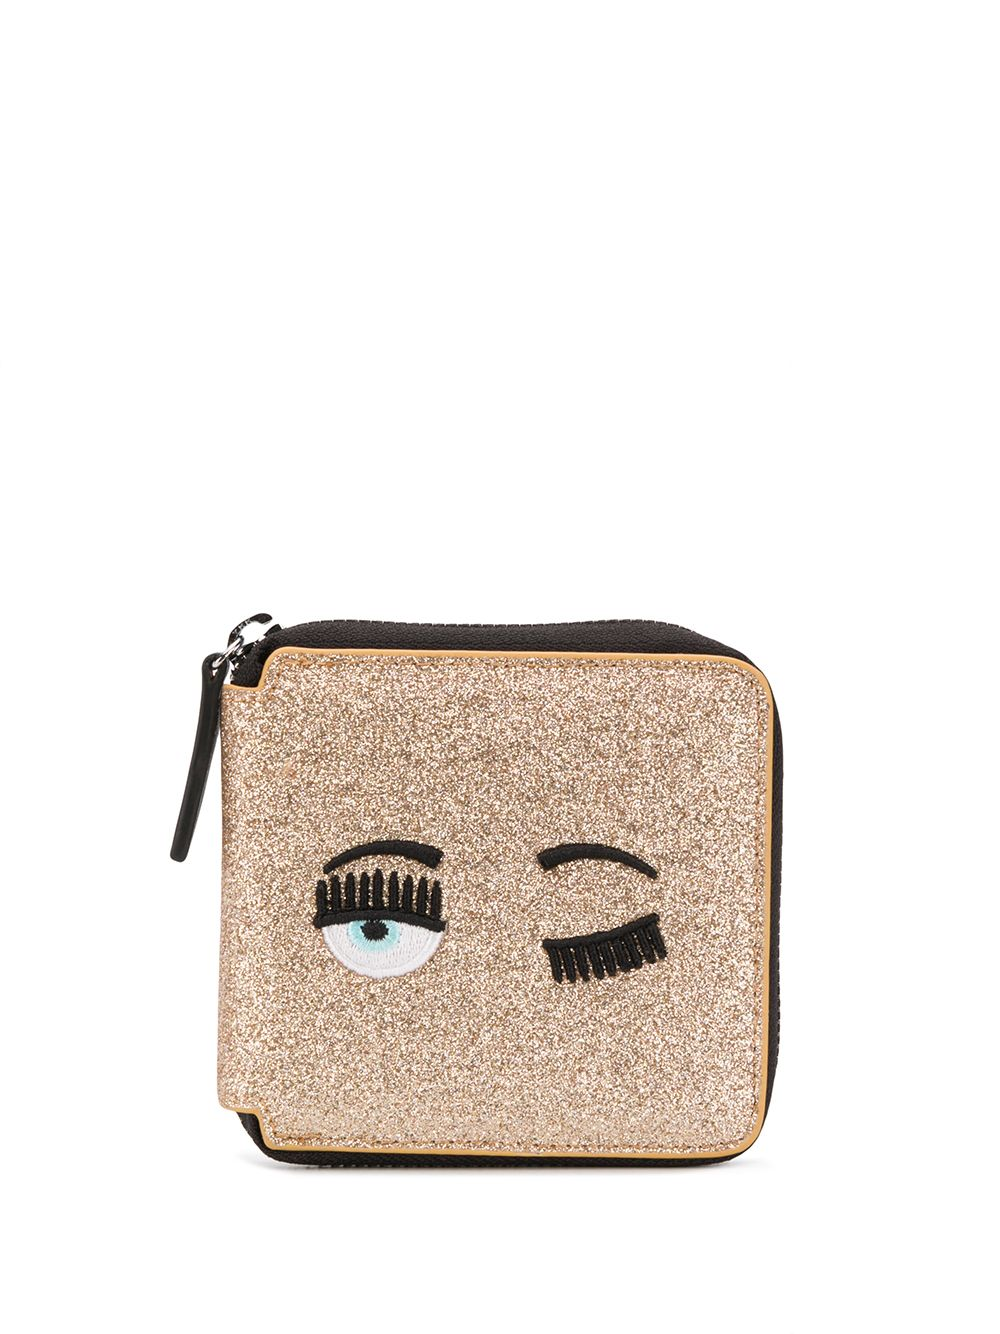 Picture of Chiara Ferragni | Wink Square Wallet